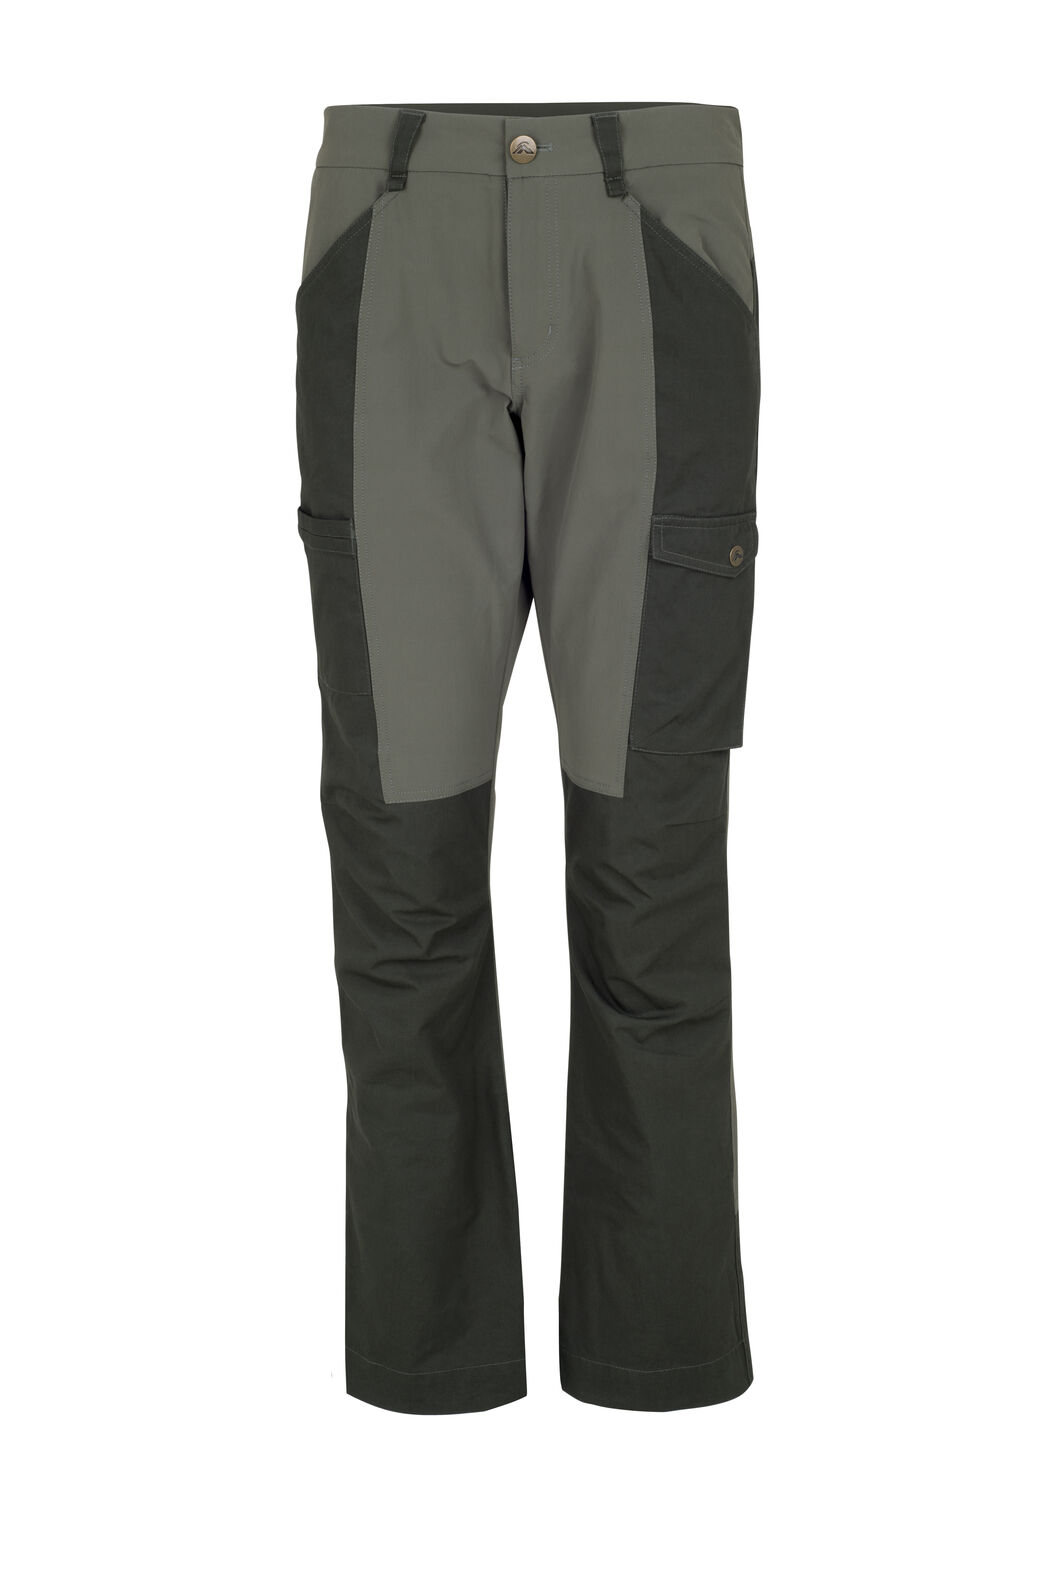 Macpac Scree Pant - Women's, Peat, hi-res